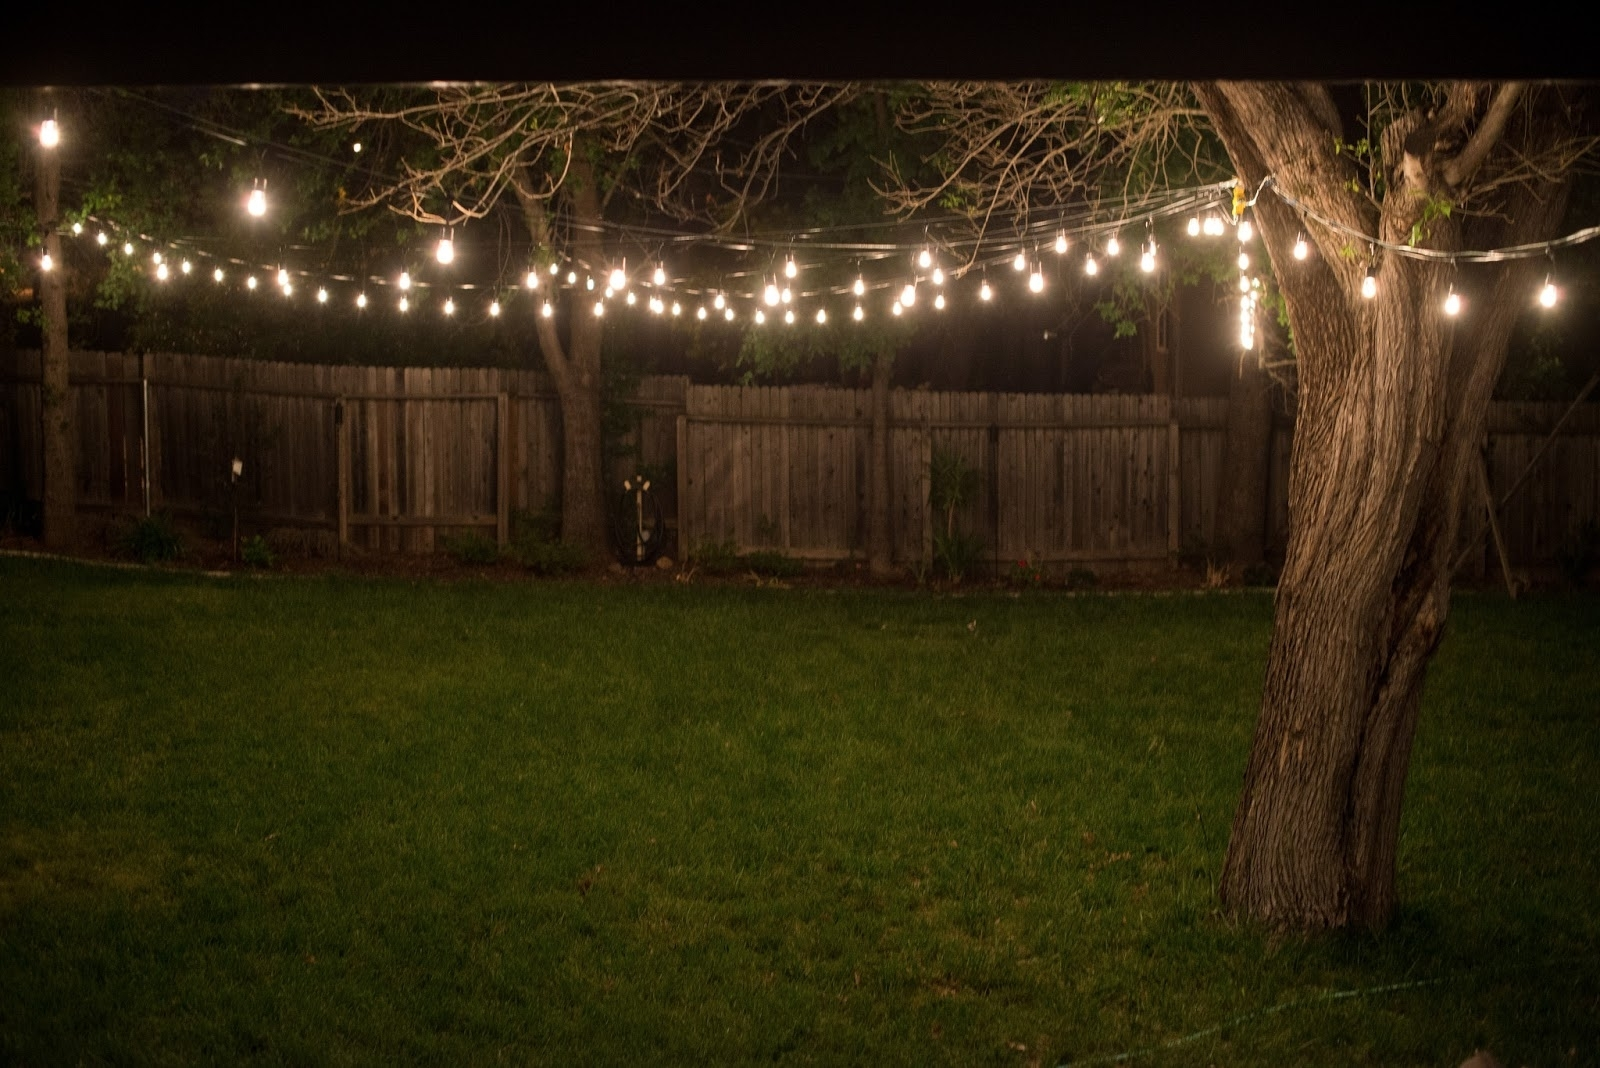 Well Known Outdoor Hanging Garden Lights Pertaining To Inspirations: Outdoor Lighting Strings Ideas Also String Lights (View 16 of 20)